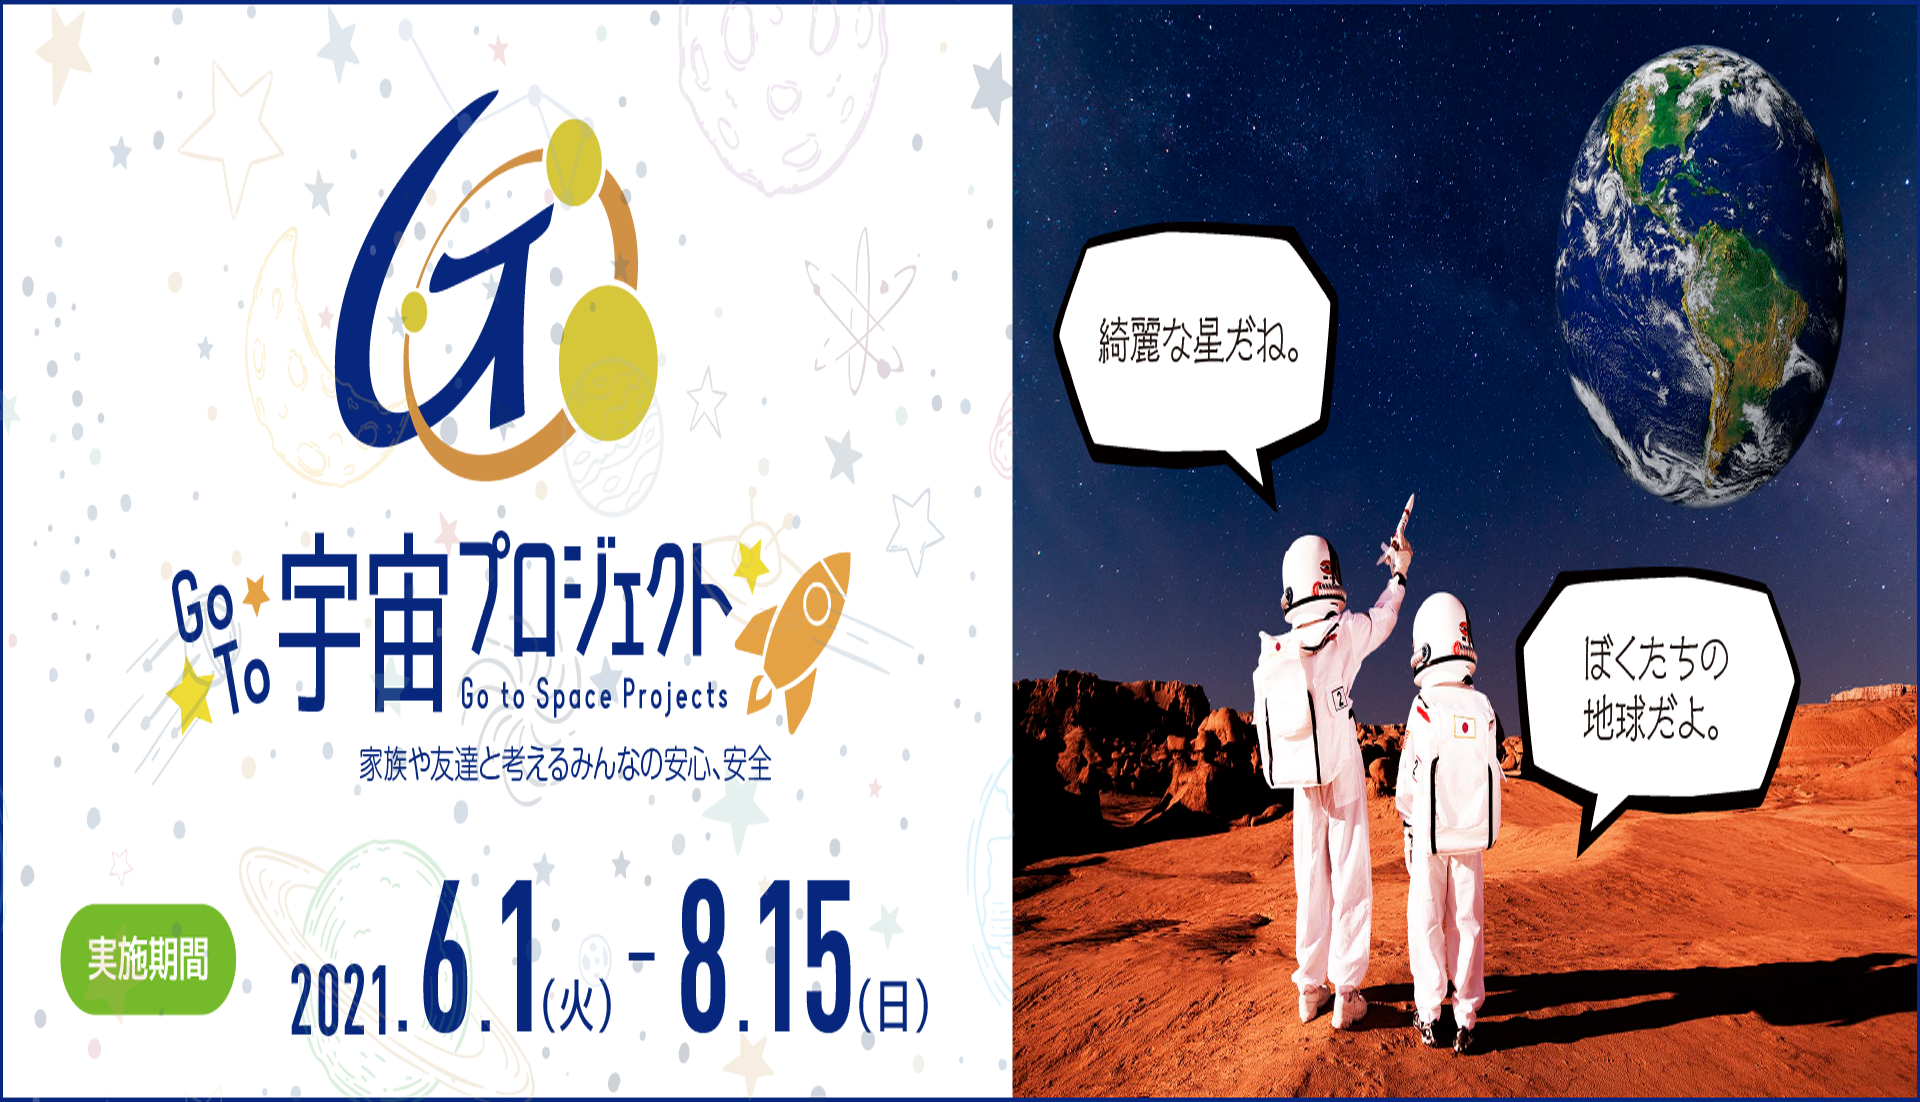 GO TO宇宙プロジェクト